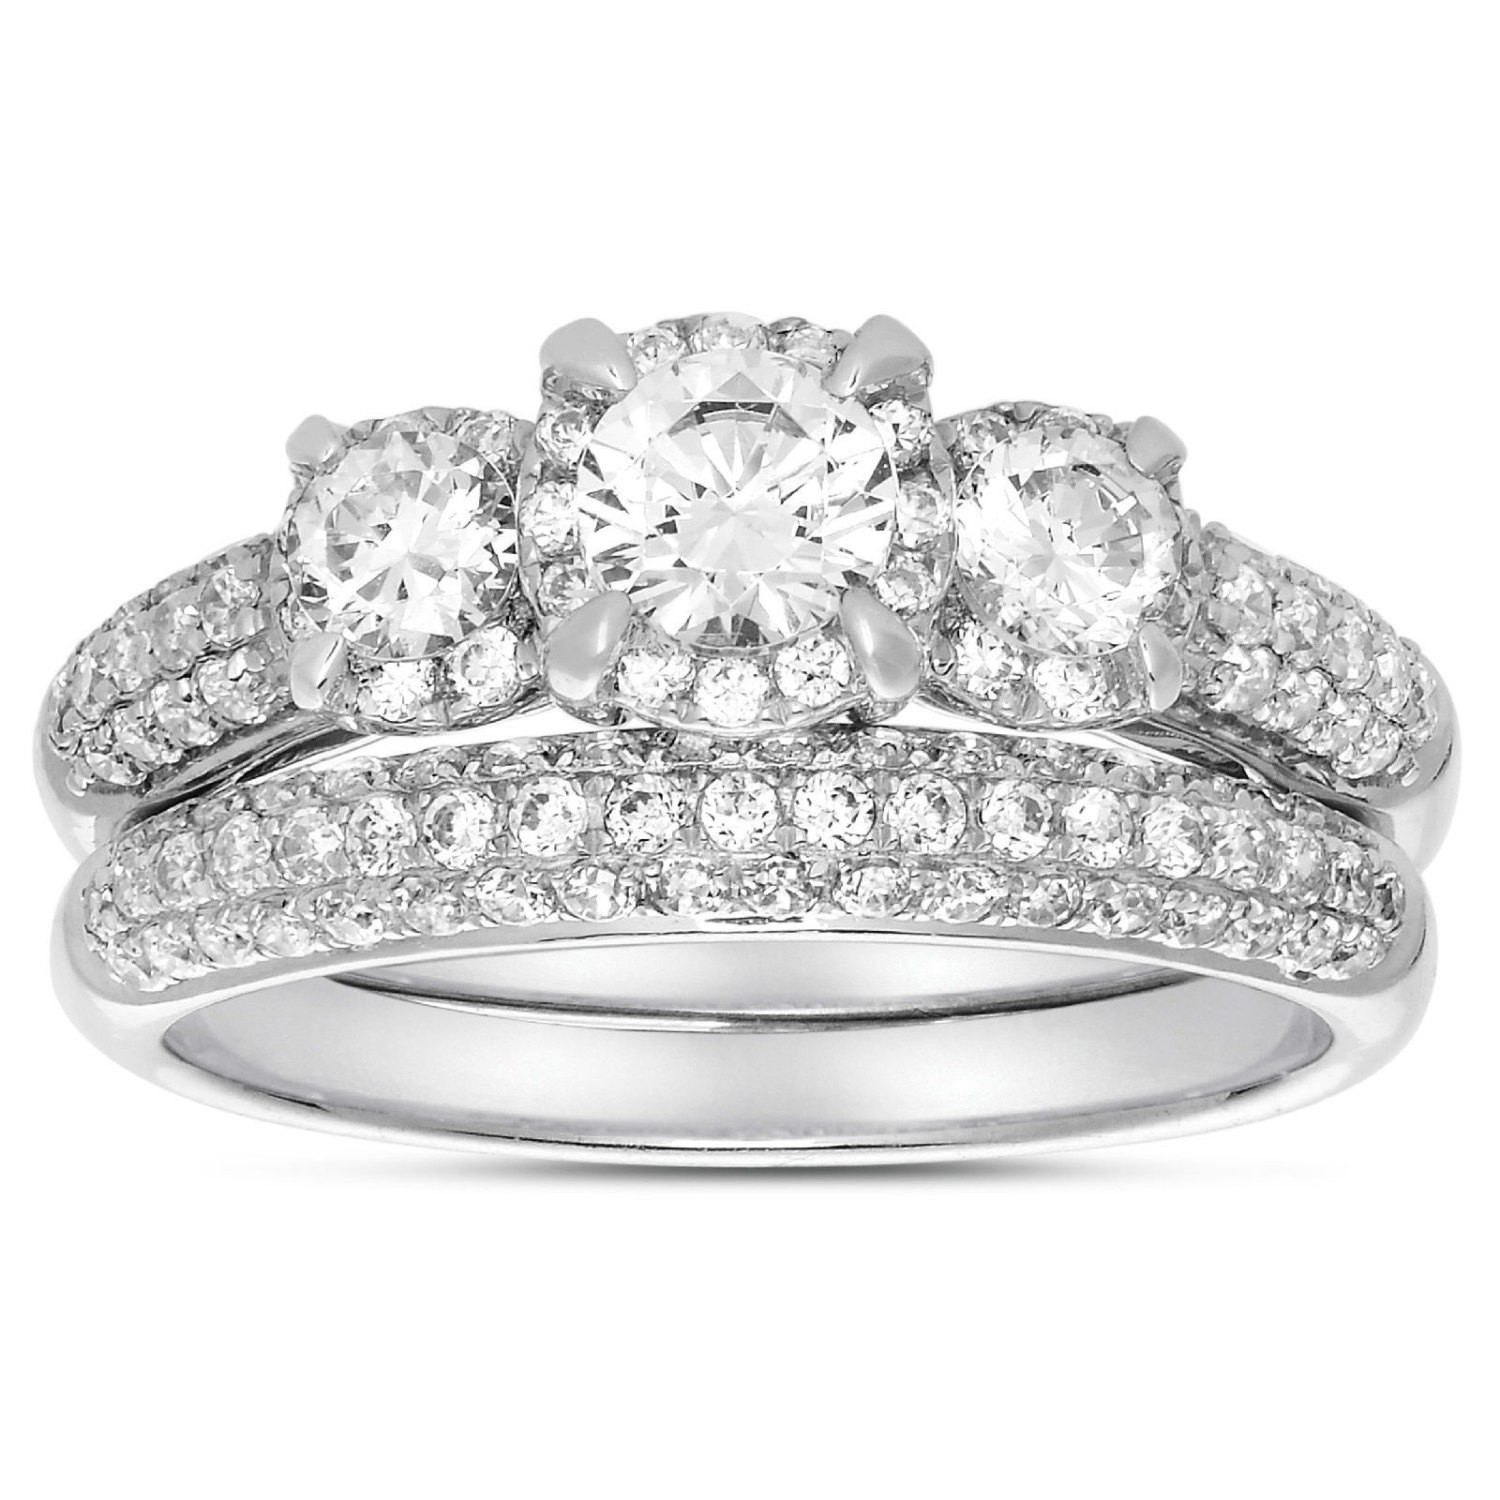 2 carat three stone trilogy round diamond wedding ring set in